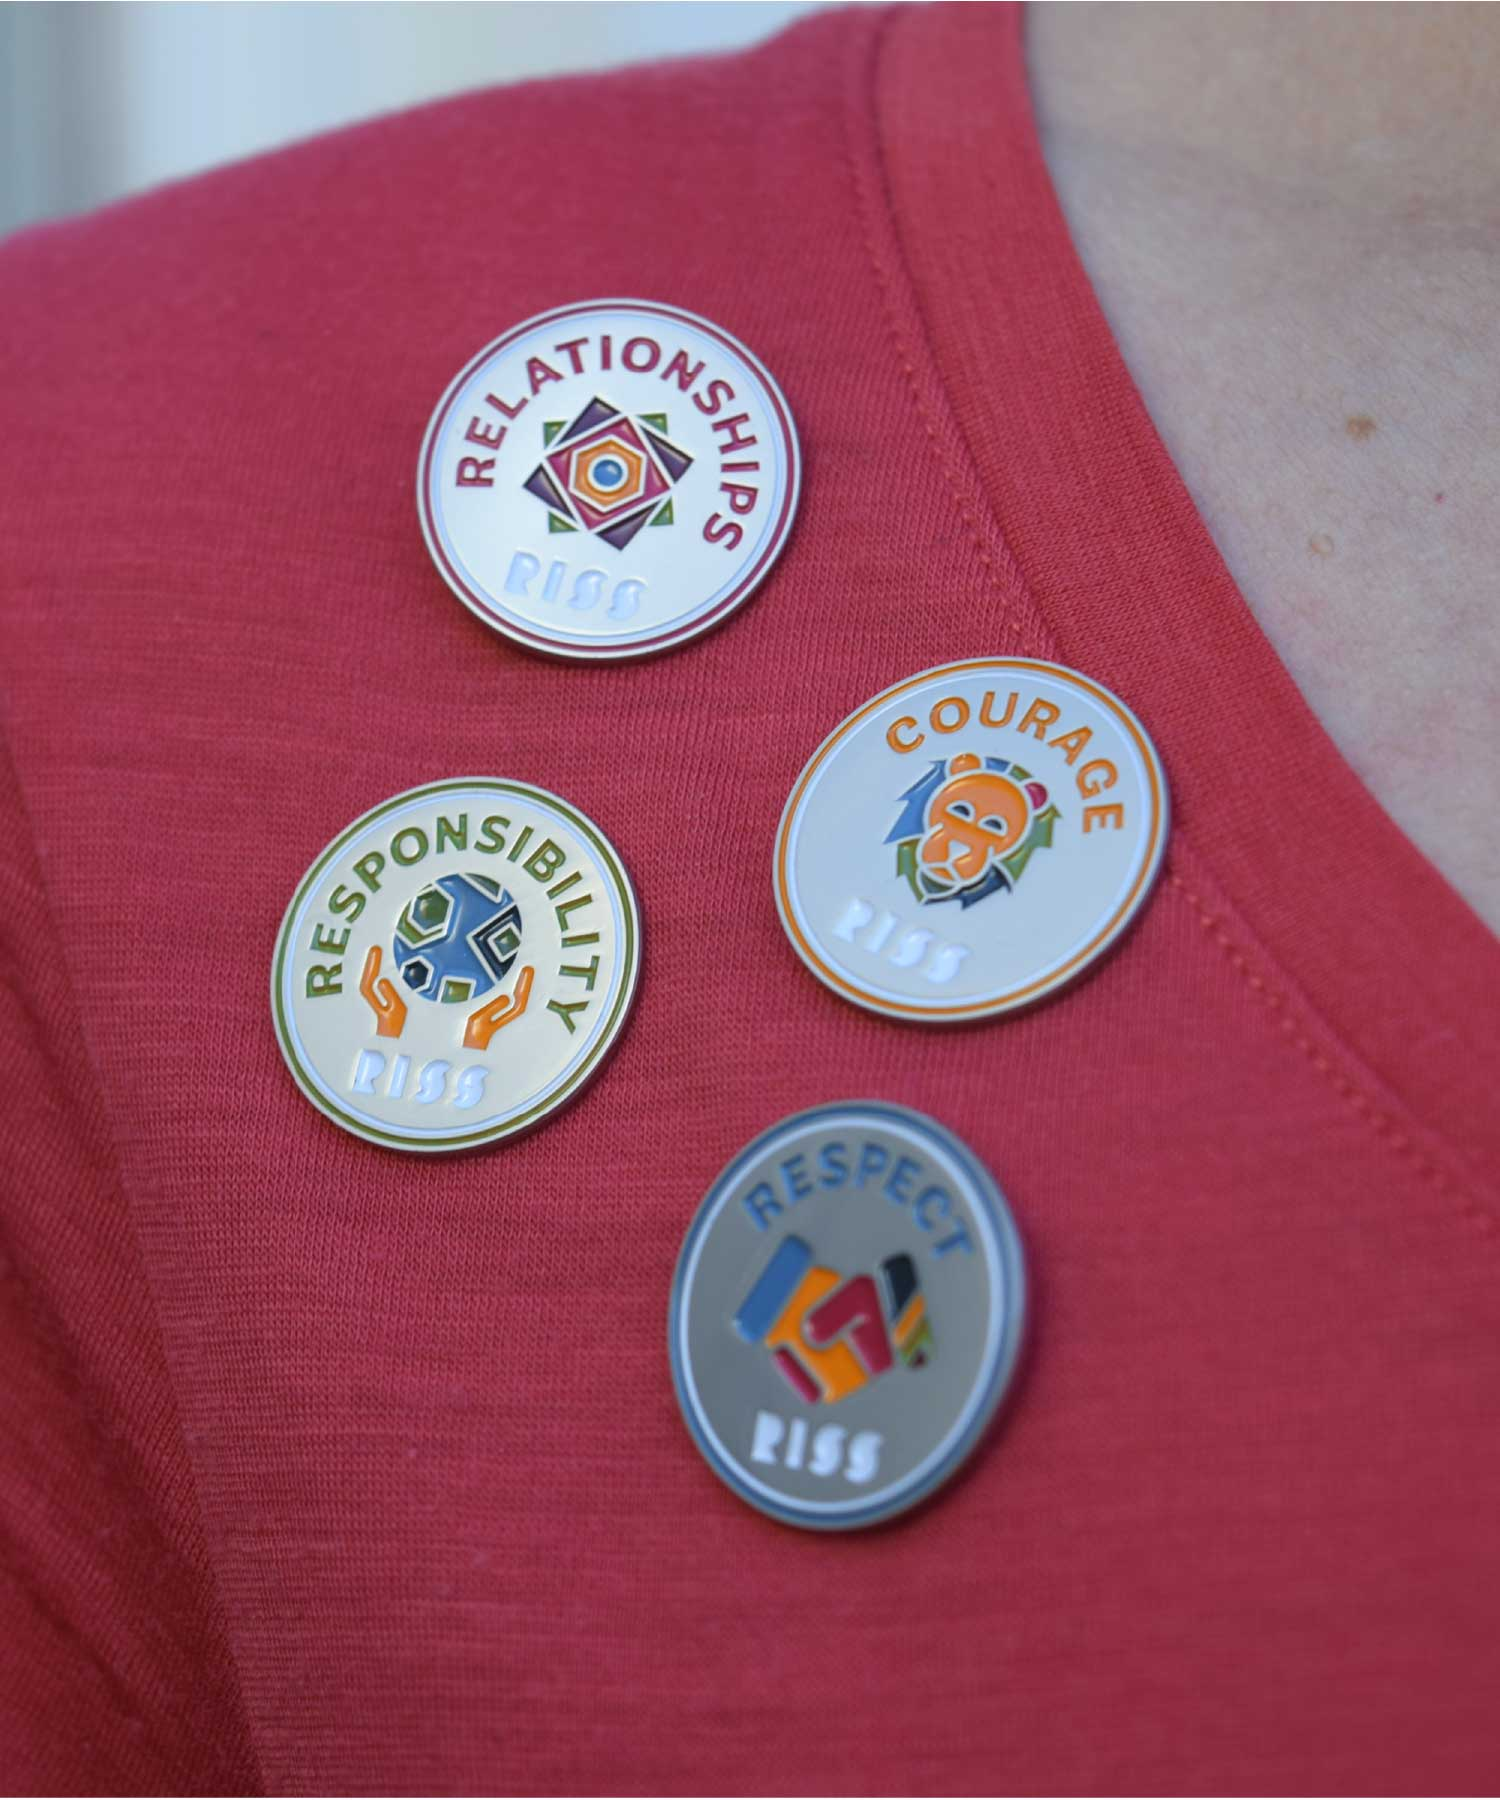 RISS Core Values Pins M-space